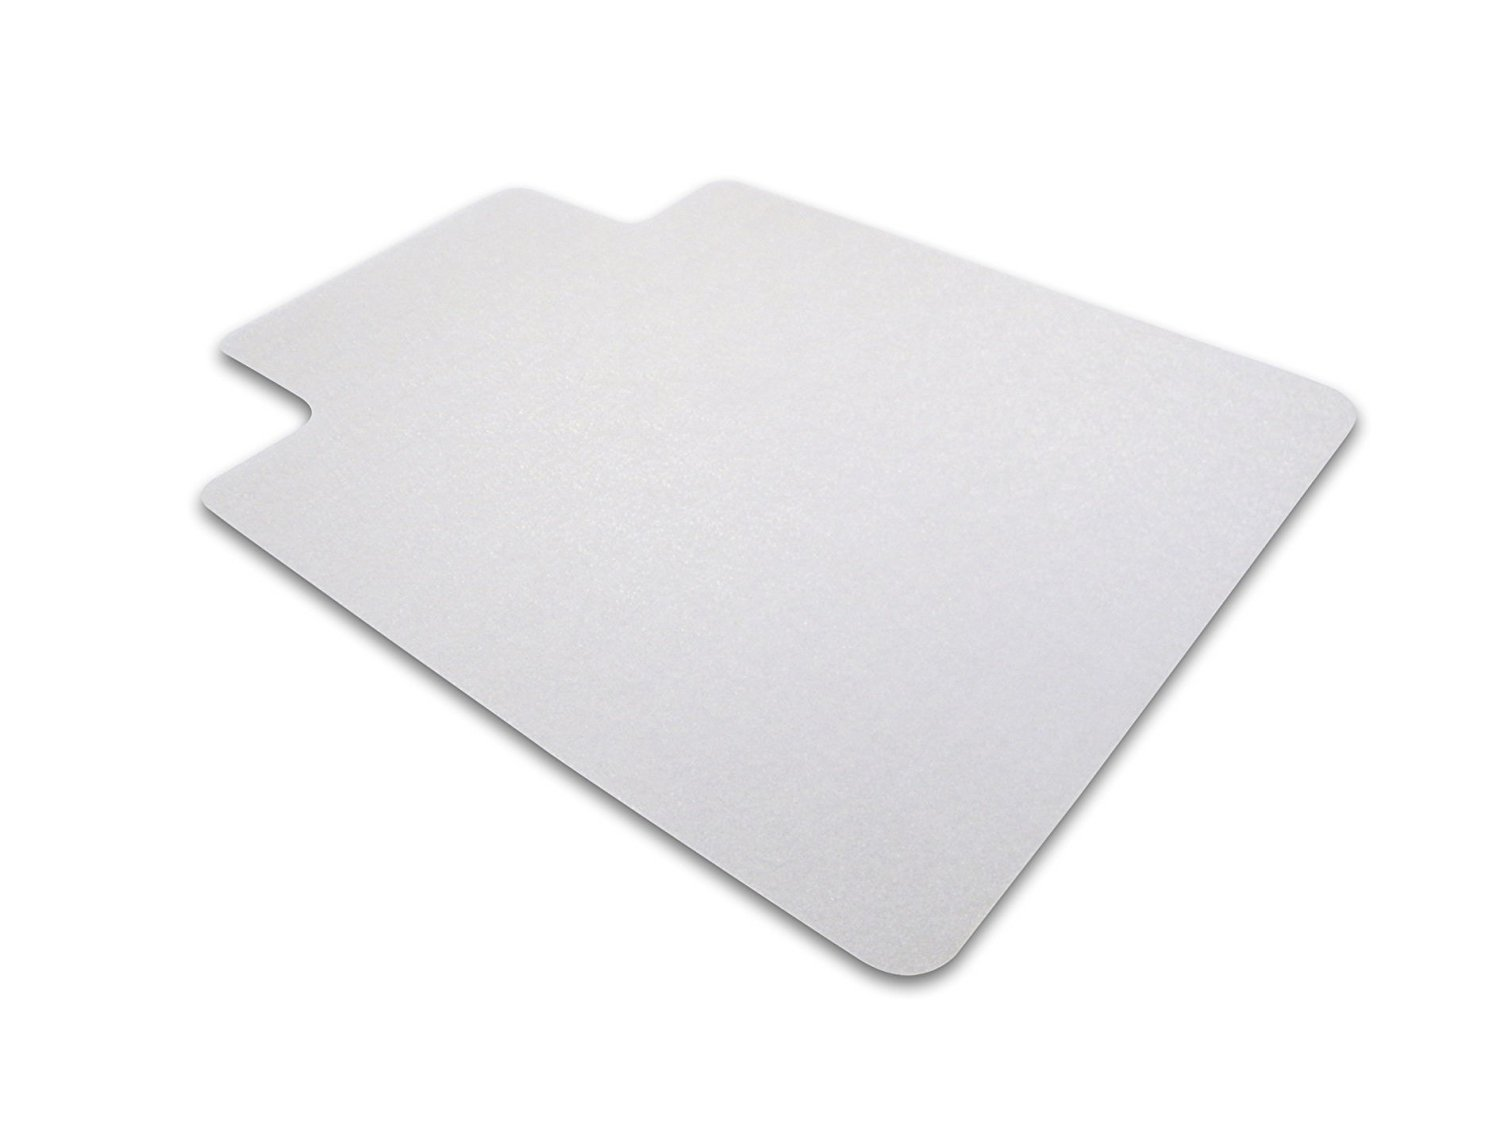 """Cleartex Ultimat Chair Mat, Rectangular With Lip, Clear Polycarbonate, For Hard Floor, 48"""" x 60"""" (FR1215219LR)"""